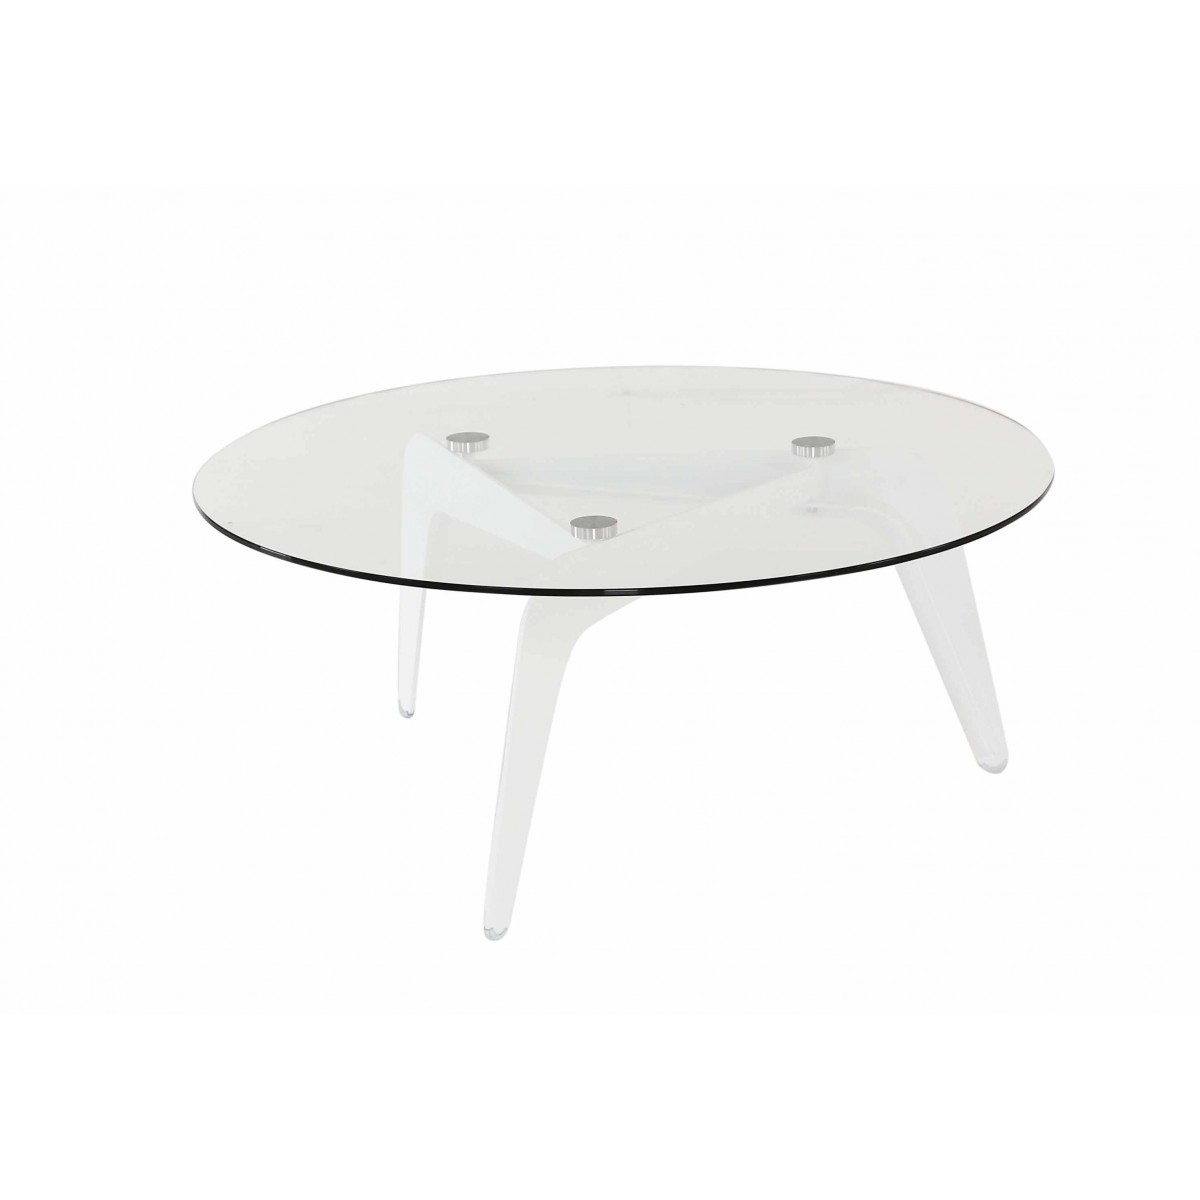 Table basse ronde verre et metal table de lit - Table basse ronde metal ...